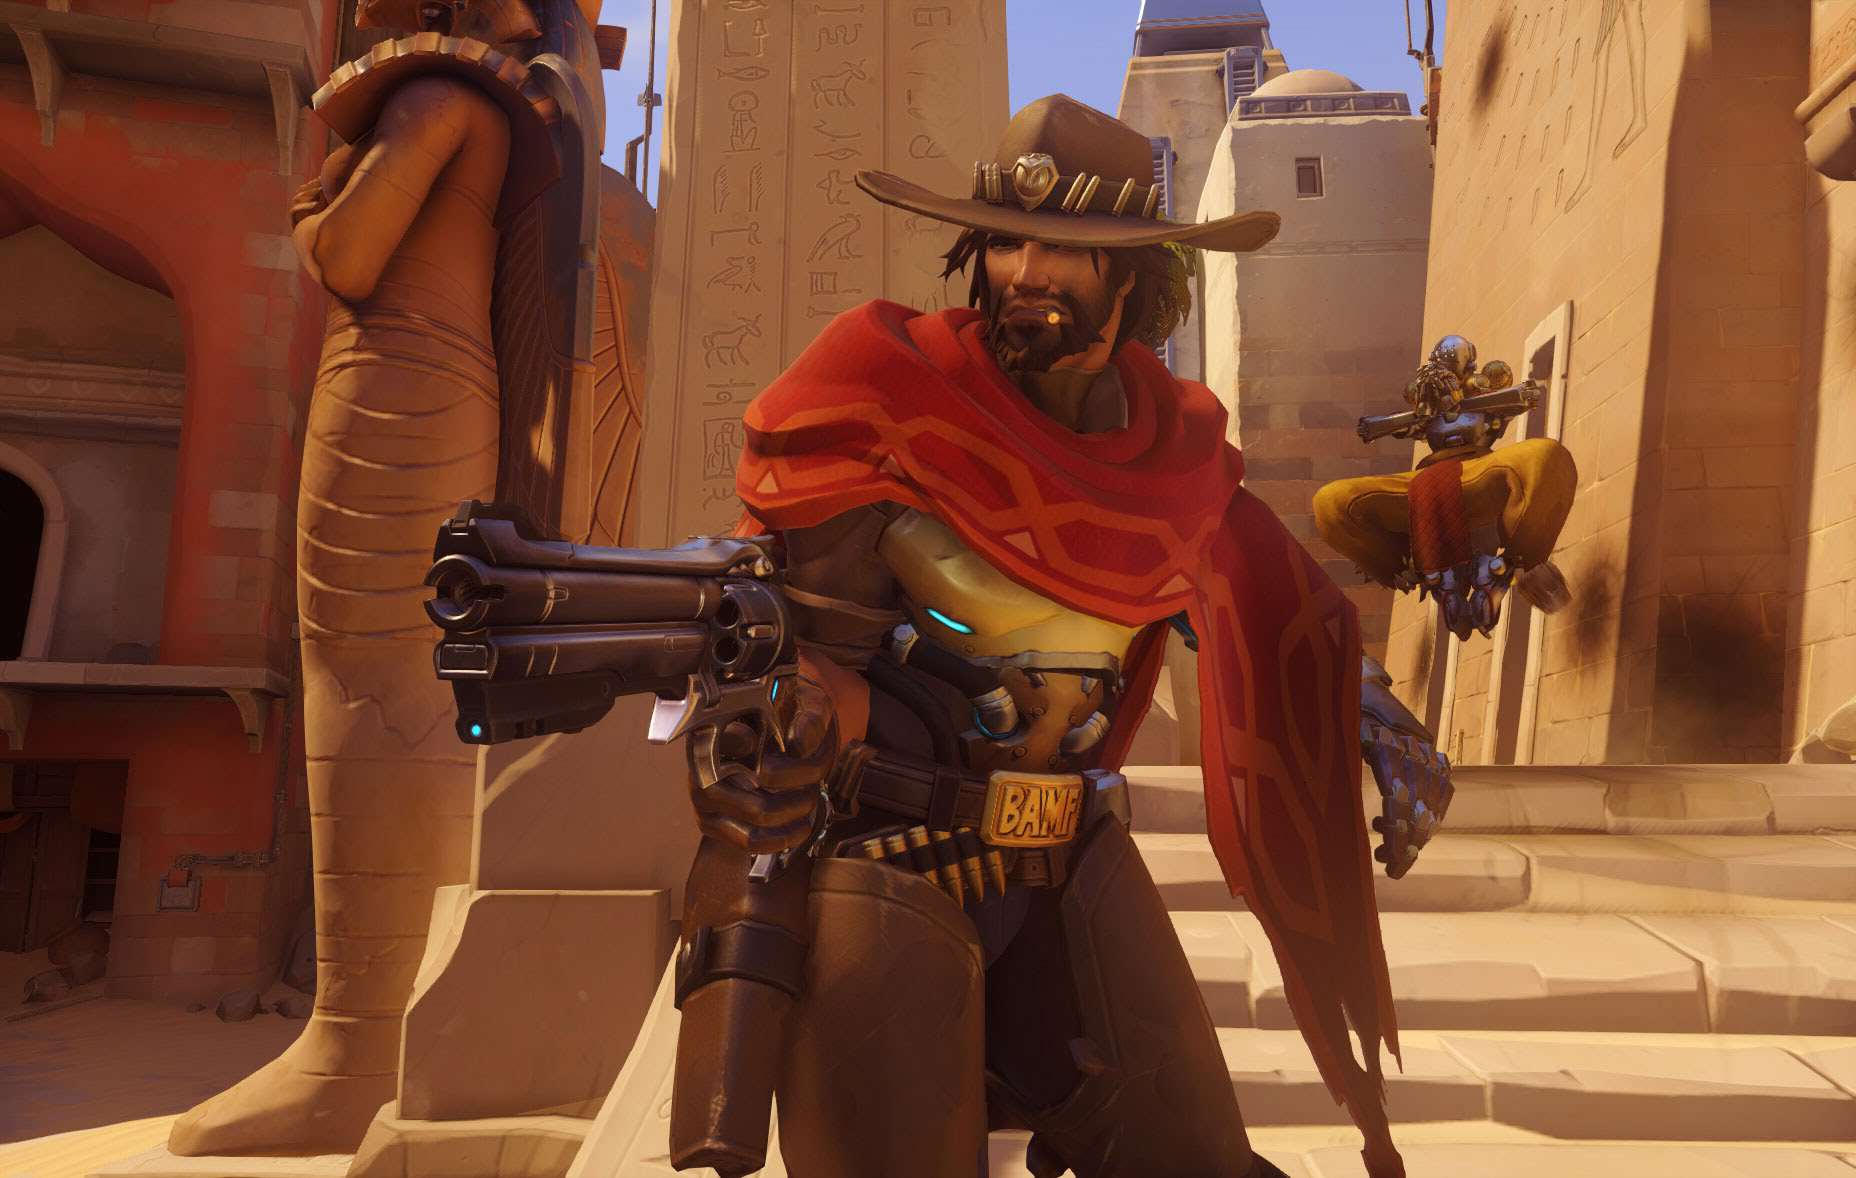 maxresdefault 11 Blizzard Planning To Nerf Key Overwatch Character